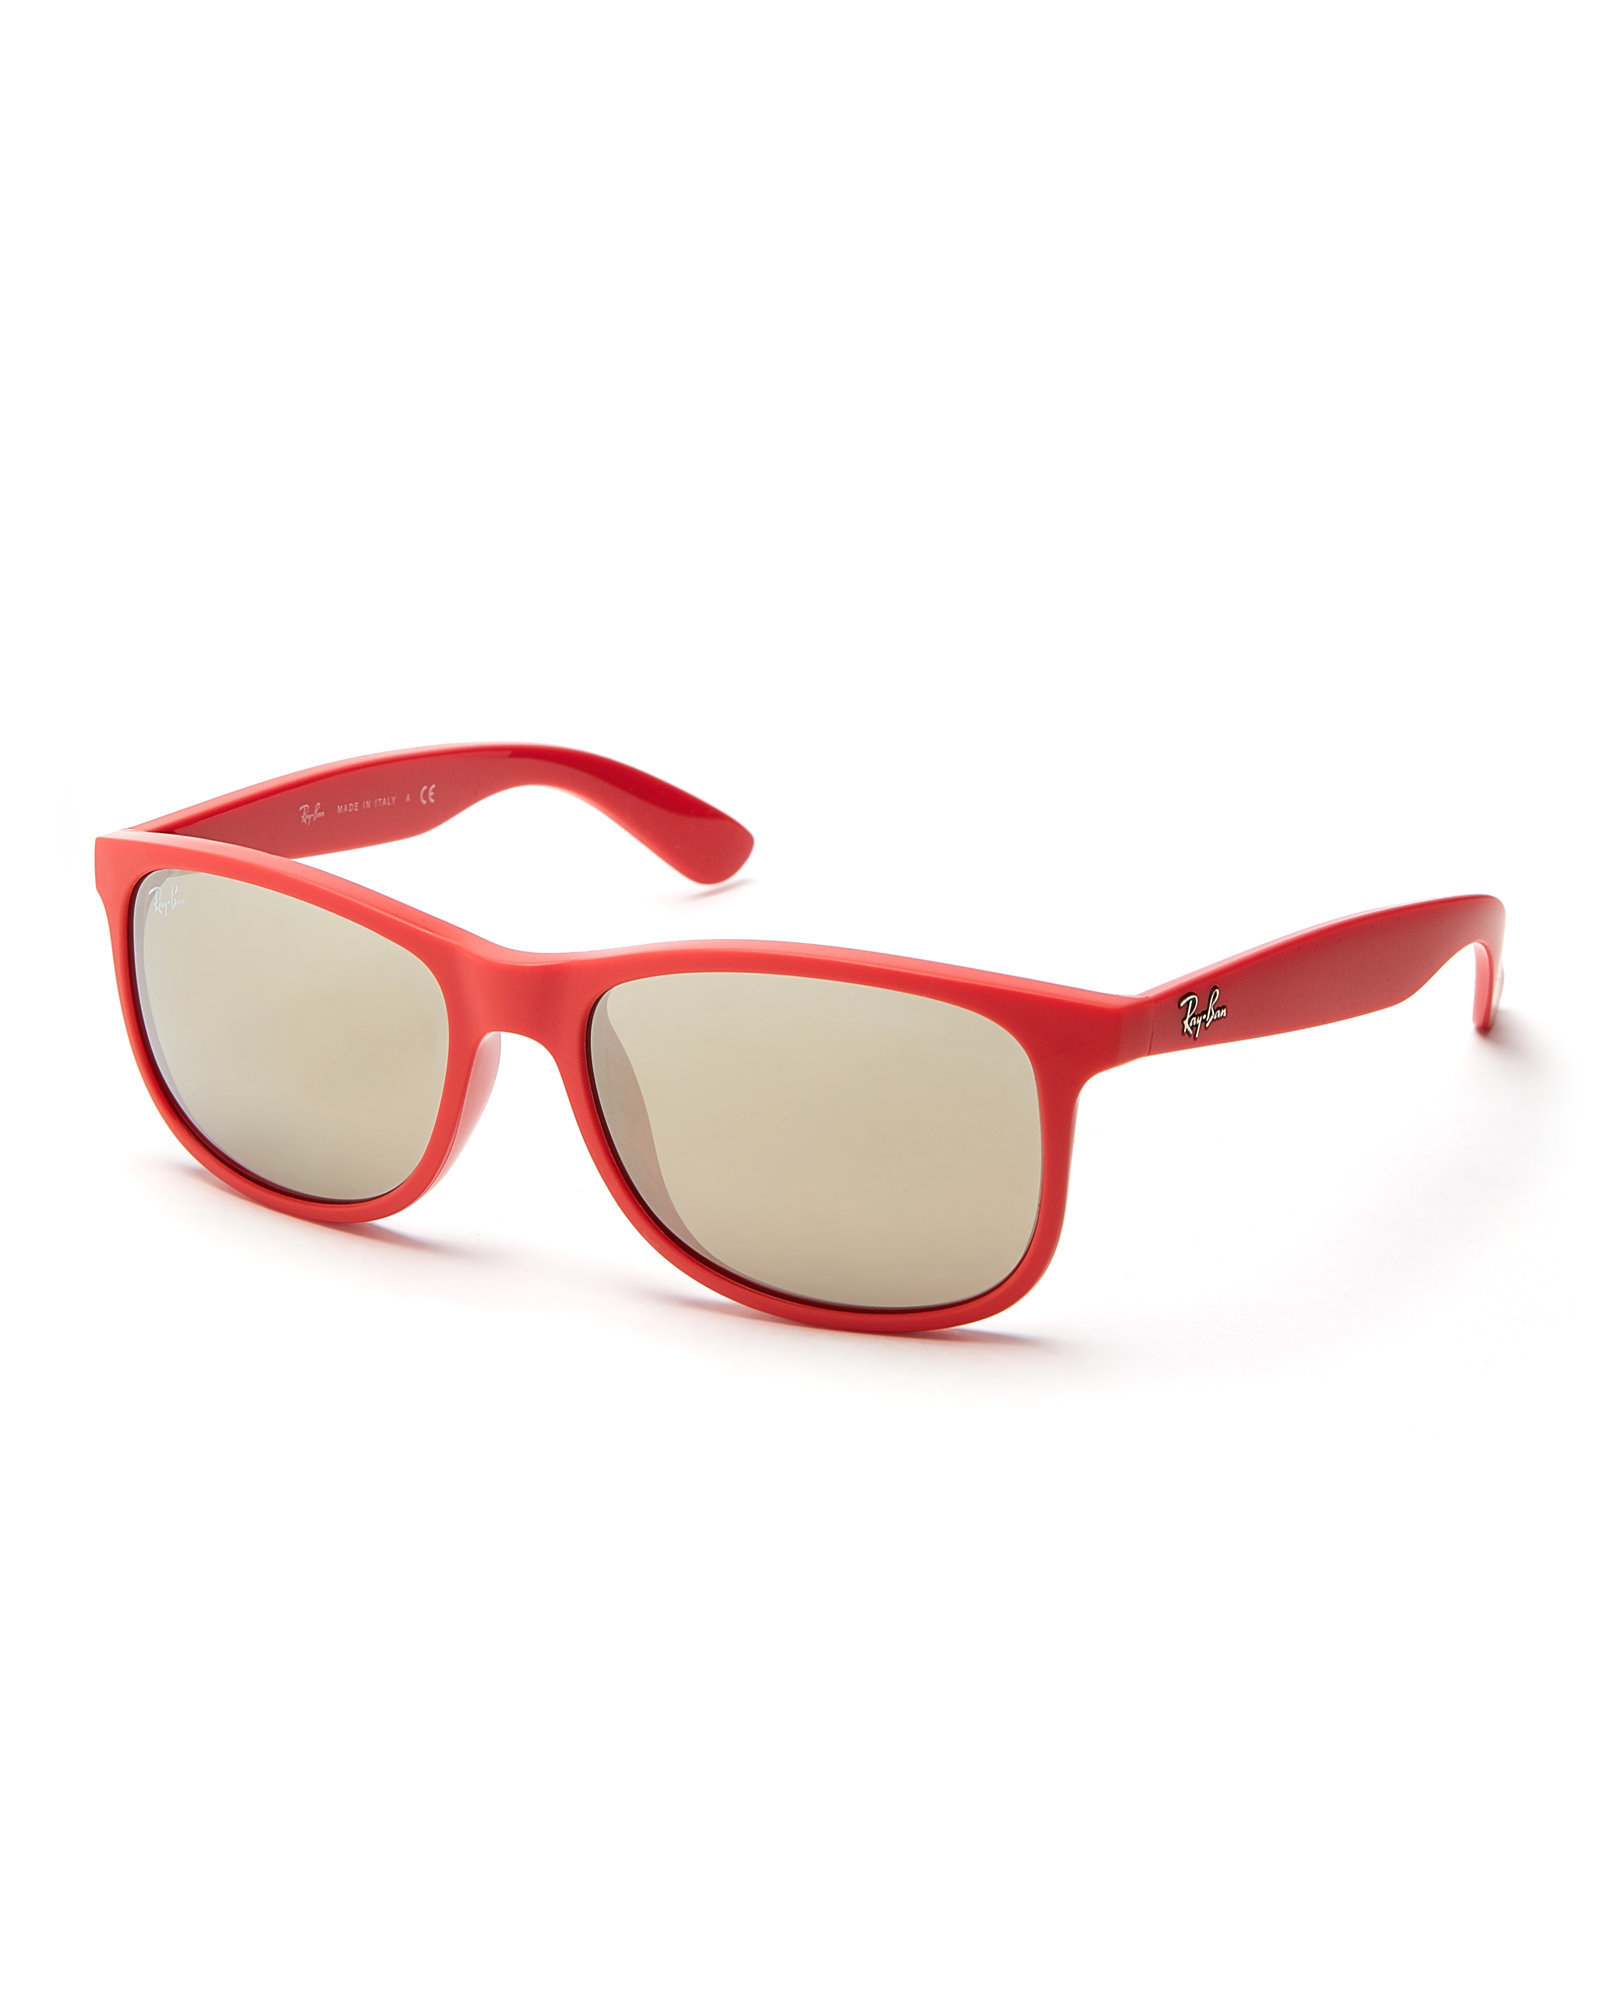 6a7f13bda2e54 ... ireland lyst ray ban red rb4202 andy wayfarer sunglasses in red 15a4a  503ff